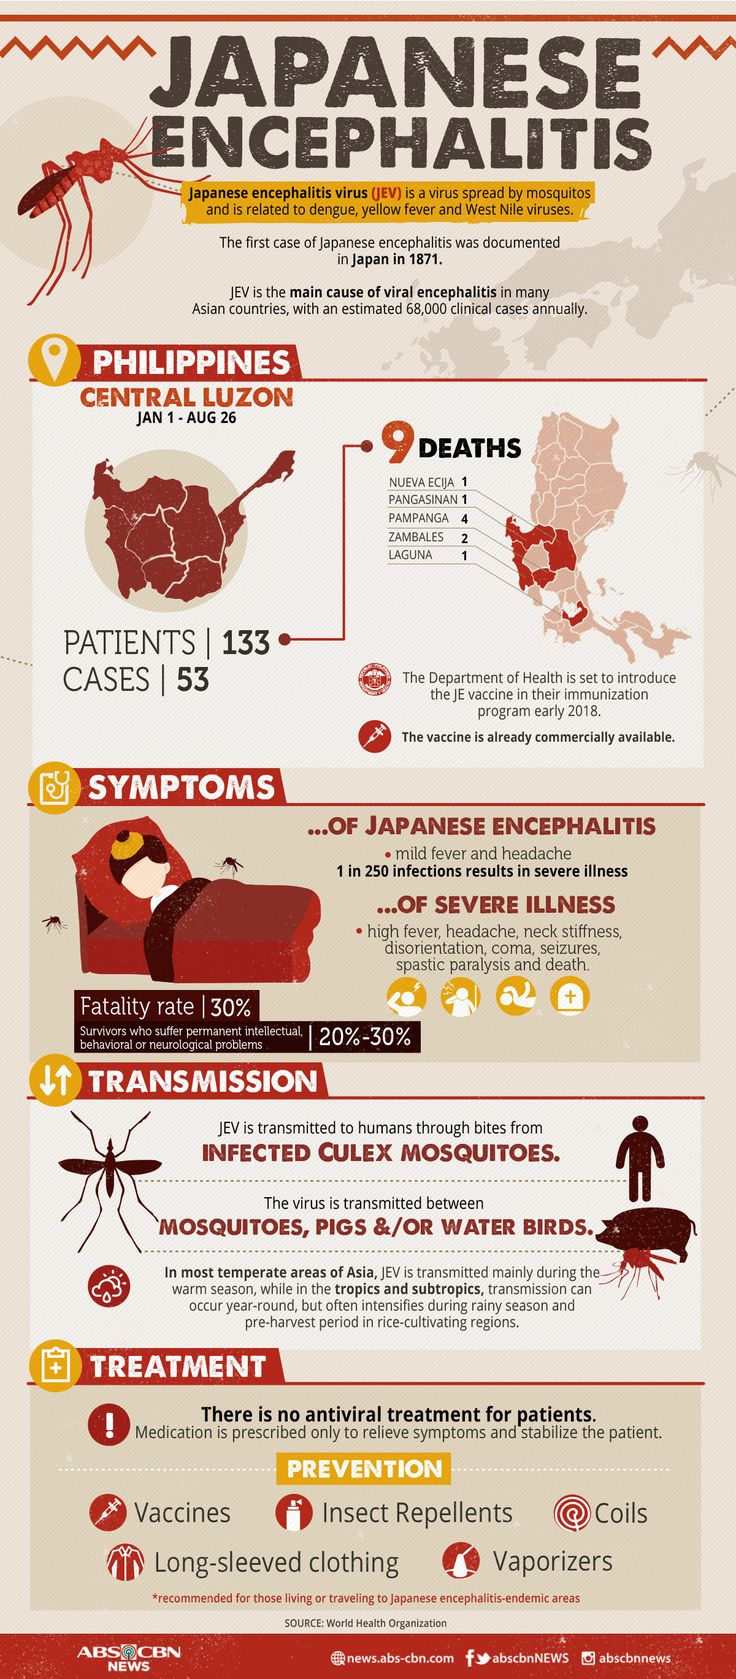 Here's what you should know about the Japanese encephalitis virus (JEV), which has claimed the lives of 9 people in the Philippines this year.